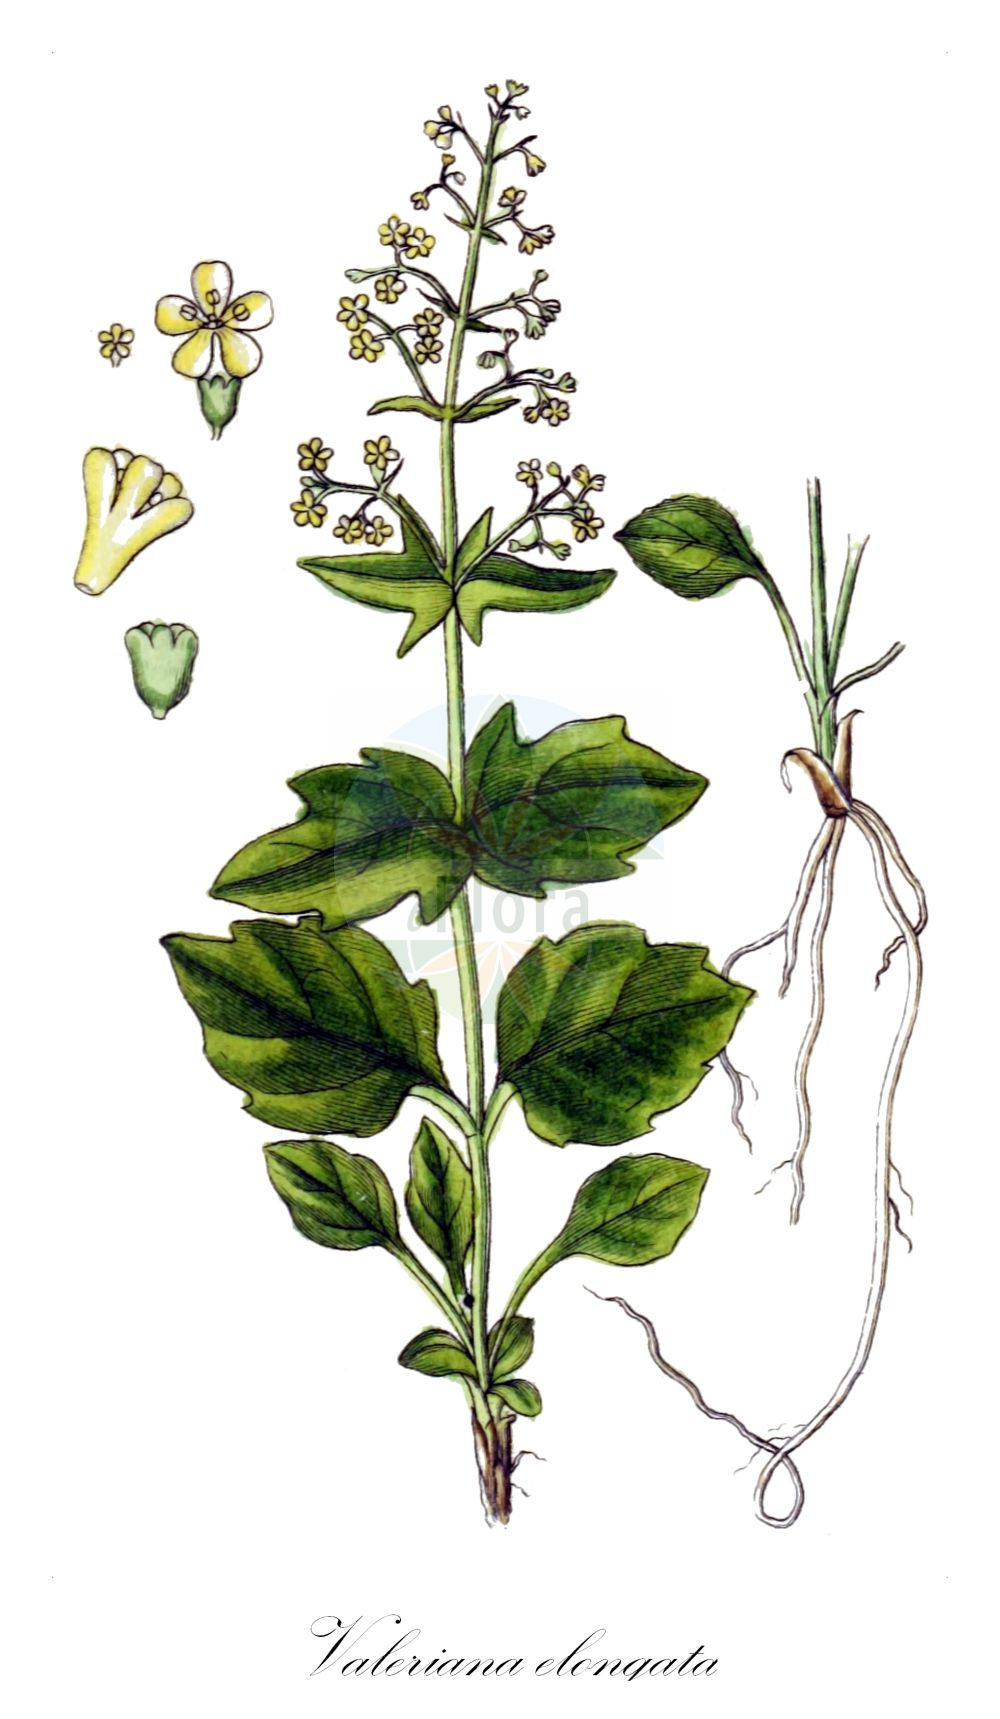 Historische Abbildung von Valeriana elongata. Das Bild zeigt Blatt, Bluete, Frucht und Same. ---- Historical Drawing of Valeriana elongata.The image is showing leaf, flower, fruit and seed.(Valeriana elongata,Valeriana,Baldrian,Valerian,Caprifoliaceae,Geissblattgewaechse,Honeysuckle family,Blatt,Bluete,Frucht,Same,leaf,flower,fruit,seed,Sturm (1796f))